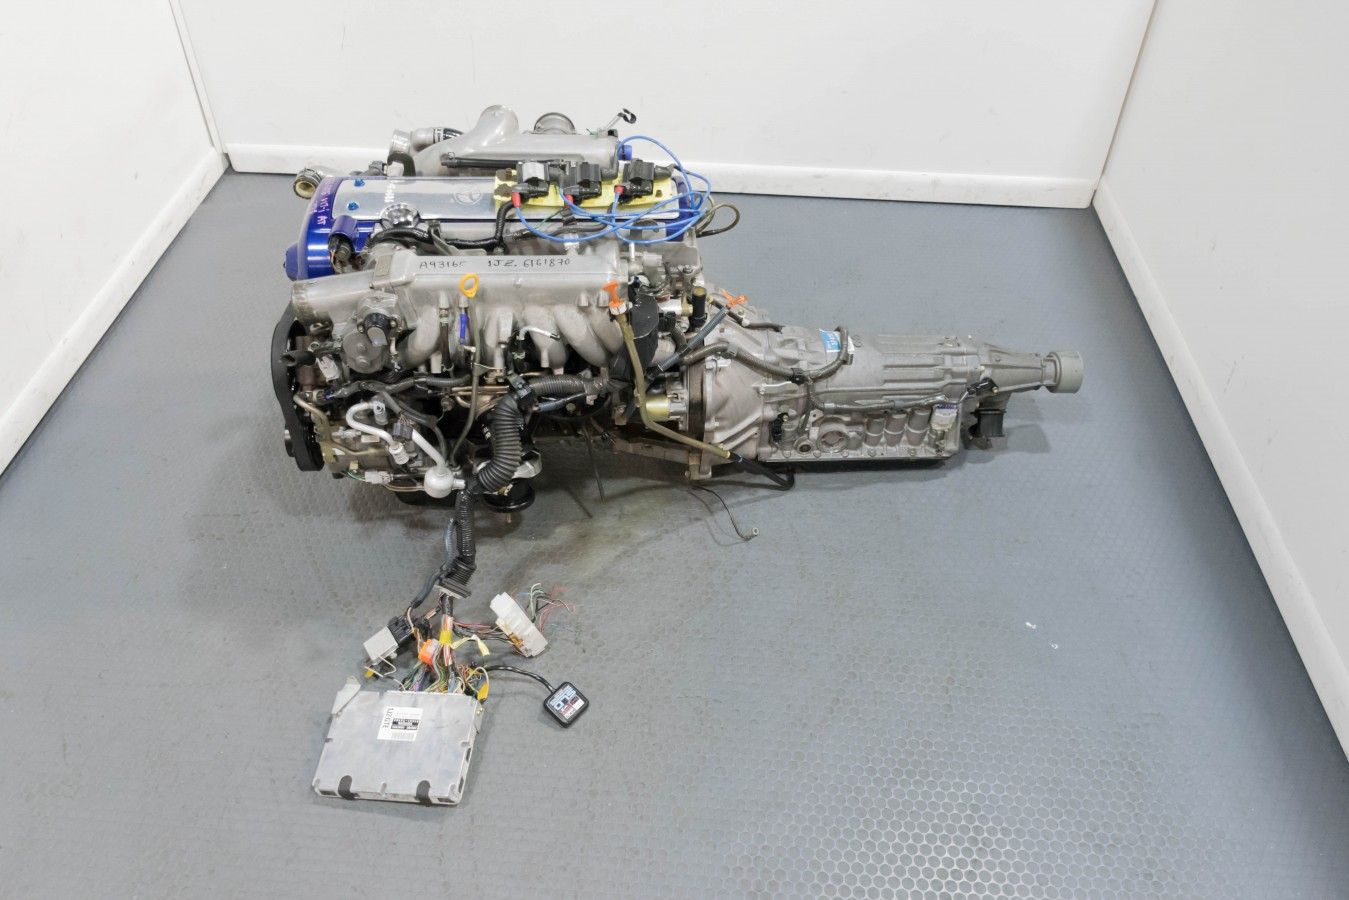 Clean Jdm Toyota 1jz Gte Vvti Front Sump Engine With Flex Throttle 1jzgte Wiring Harness 1195 Dsc 0239